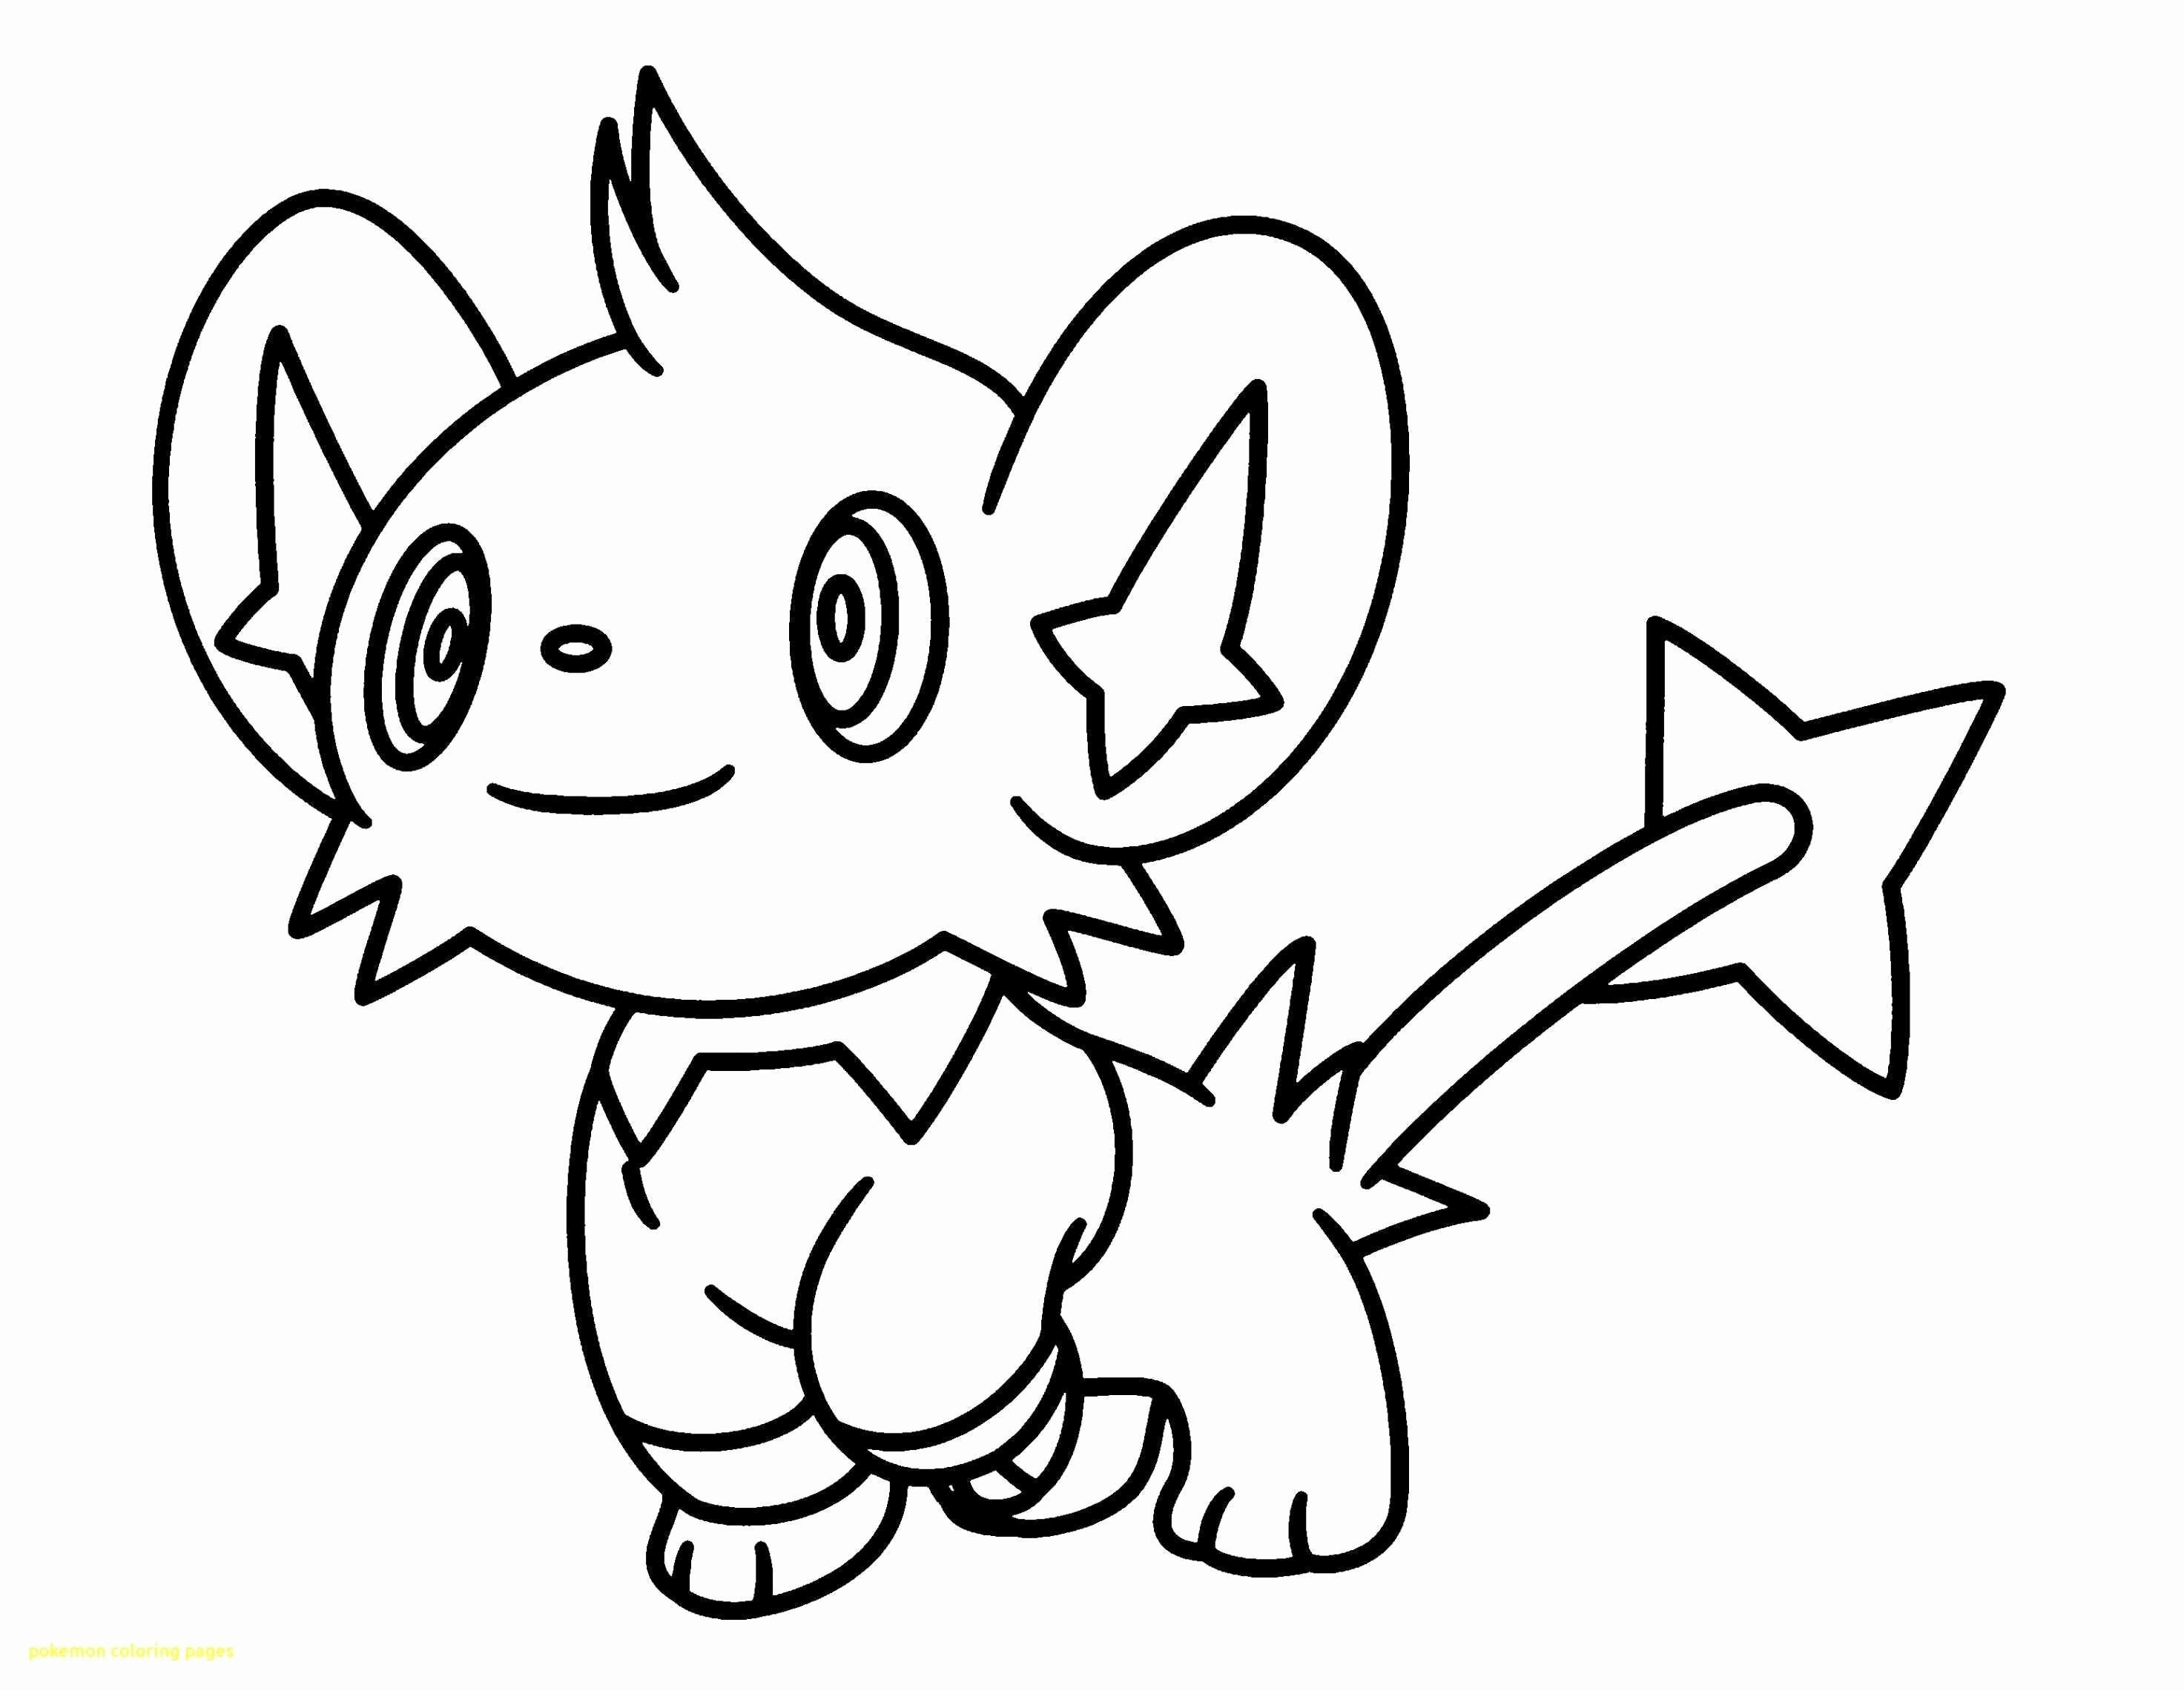 Birthday Boy Pictures Lovely Coloring Pages For Boys Elegant Happy Birthday Kids Leprechaun Pokemon Coloring Pikachu Coloring Page Pokemon Coloring Pages